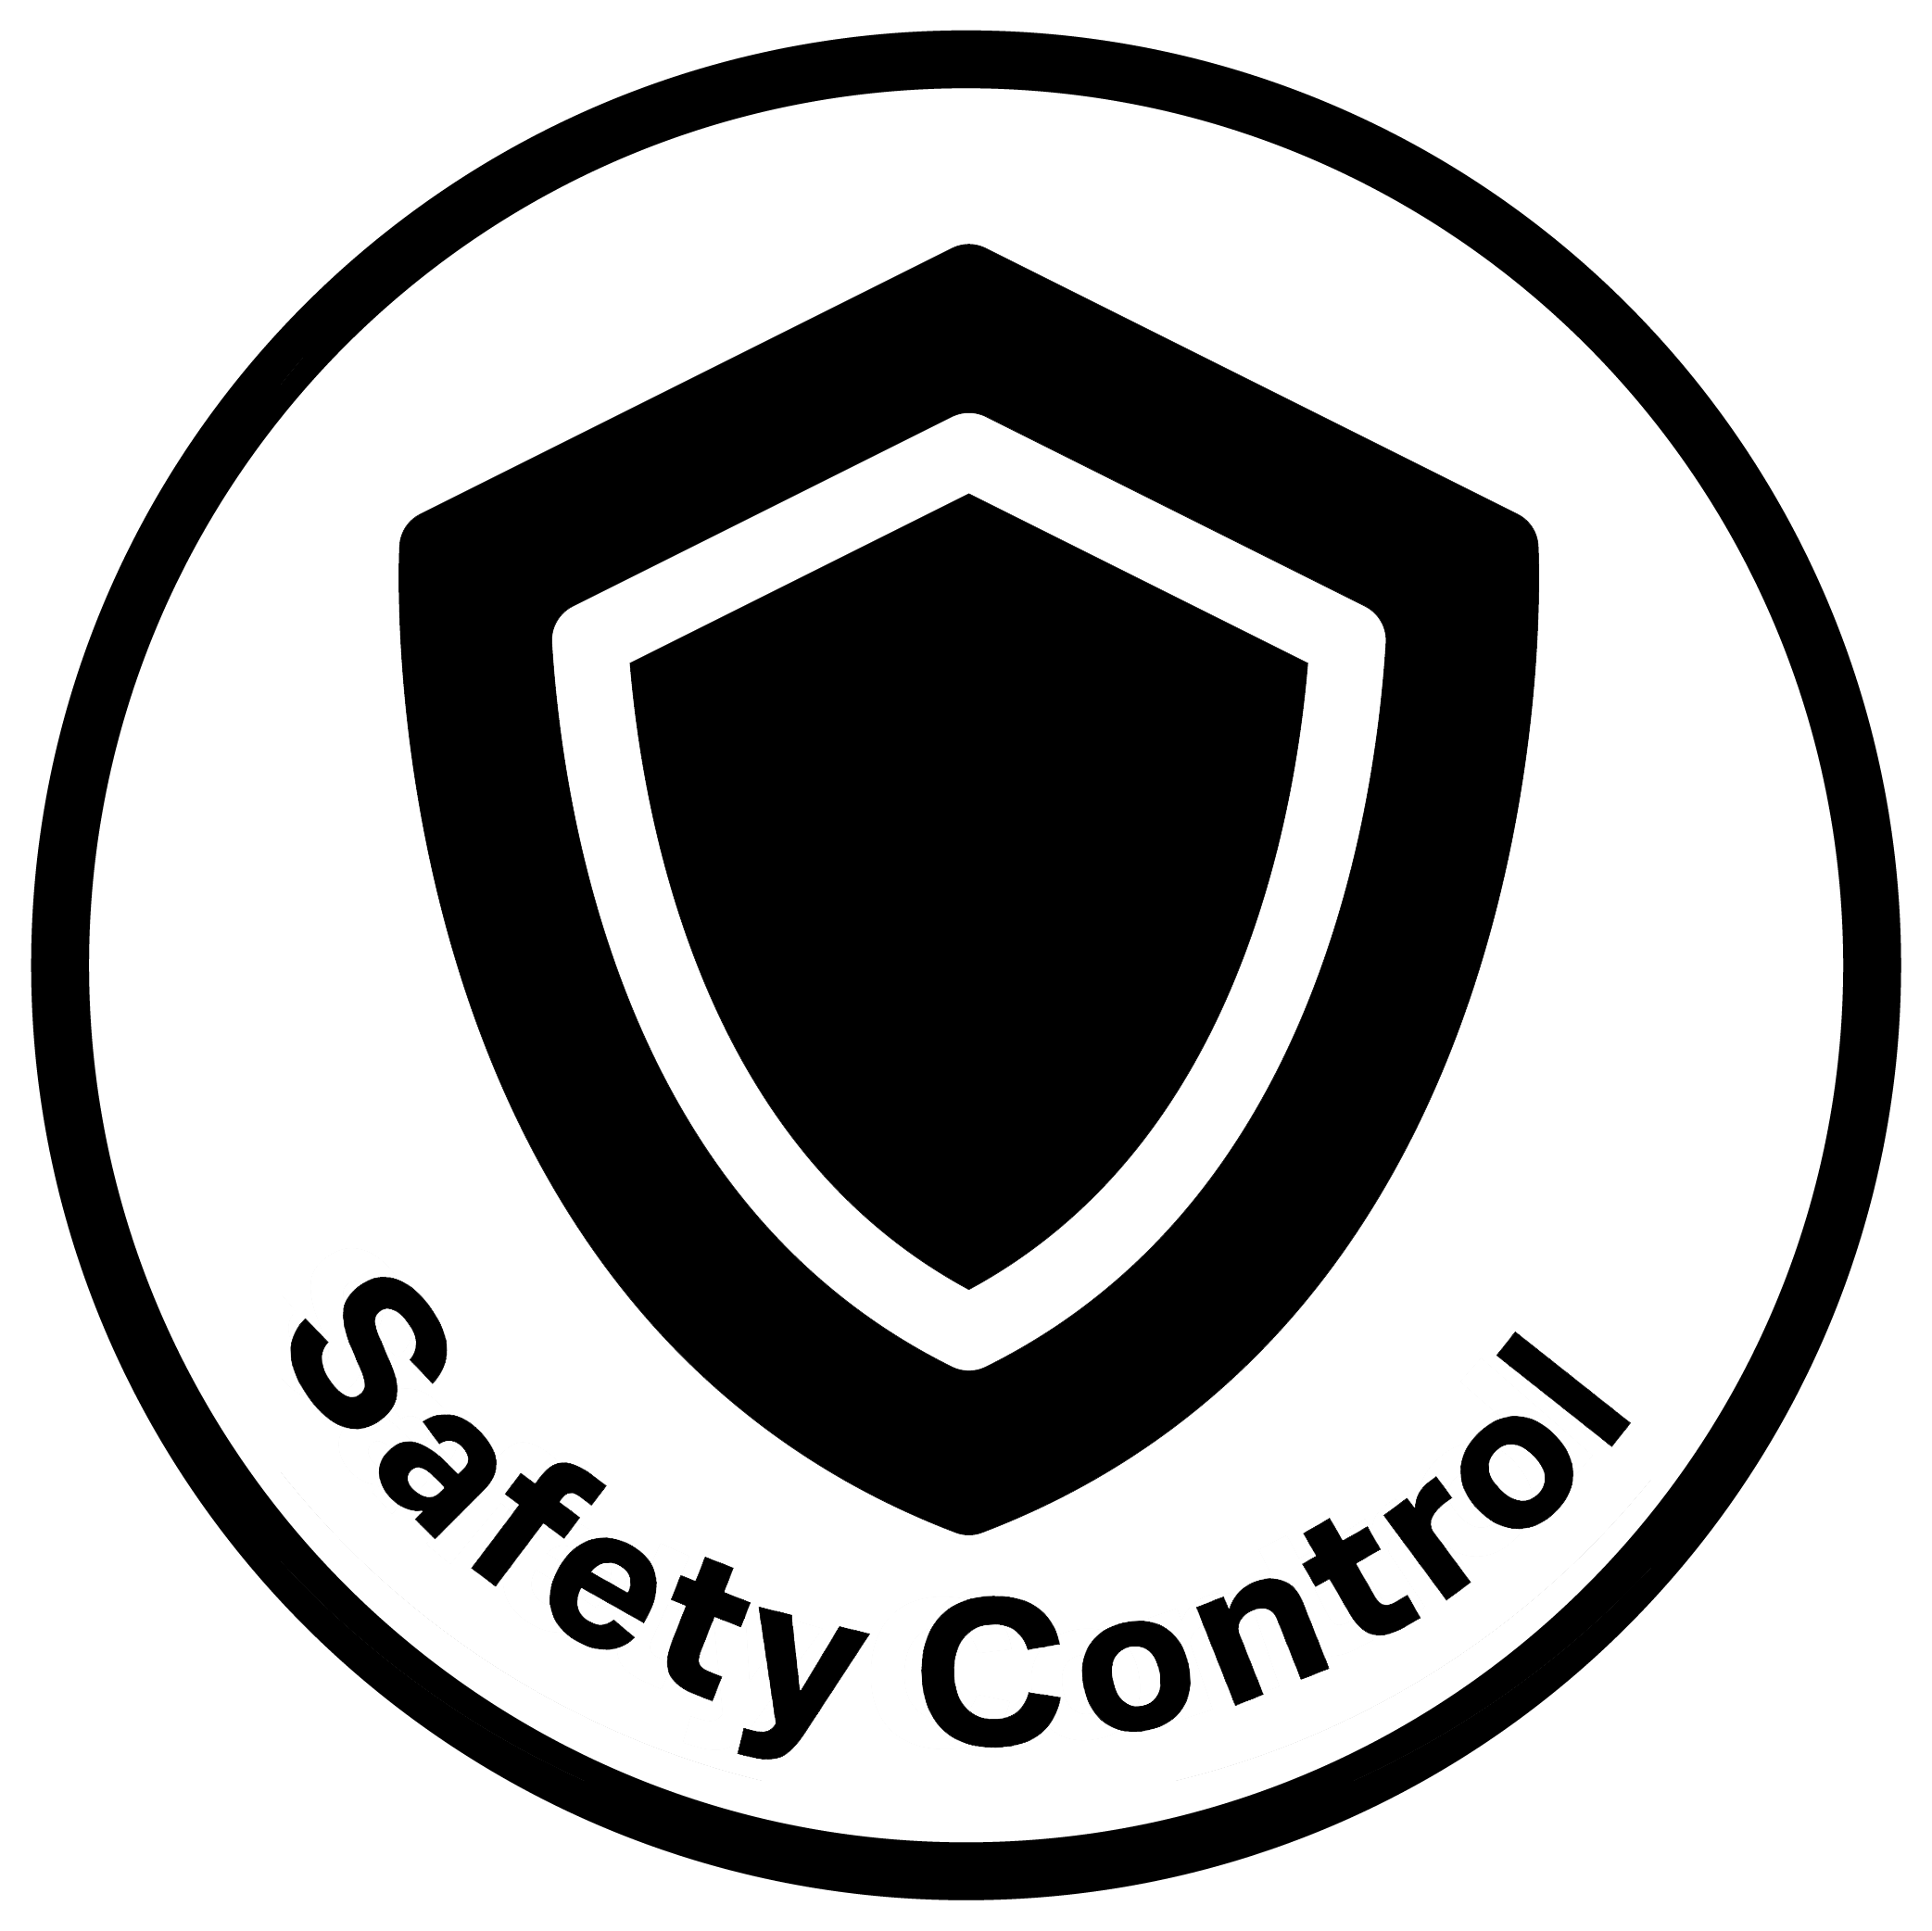 SAFETY CONTROL